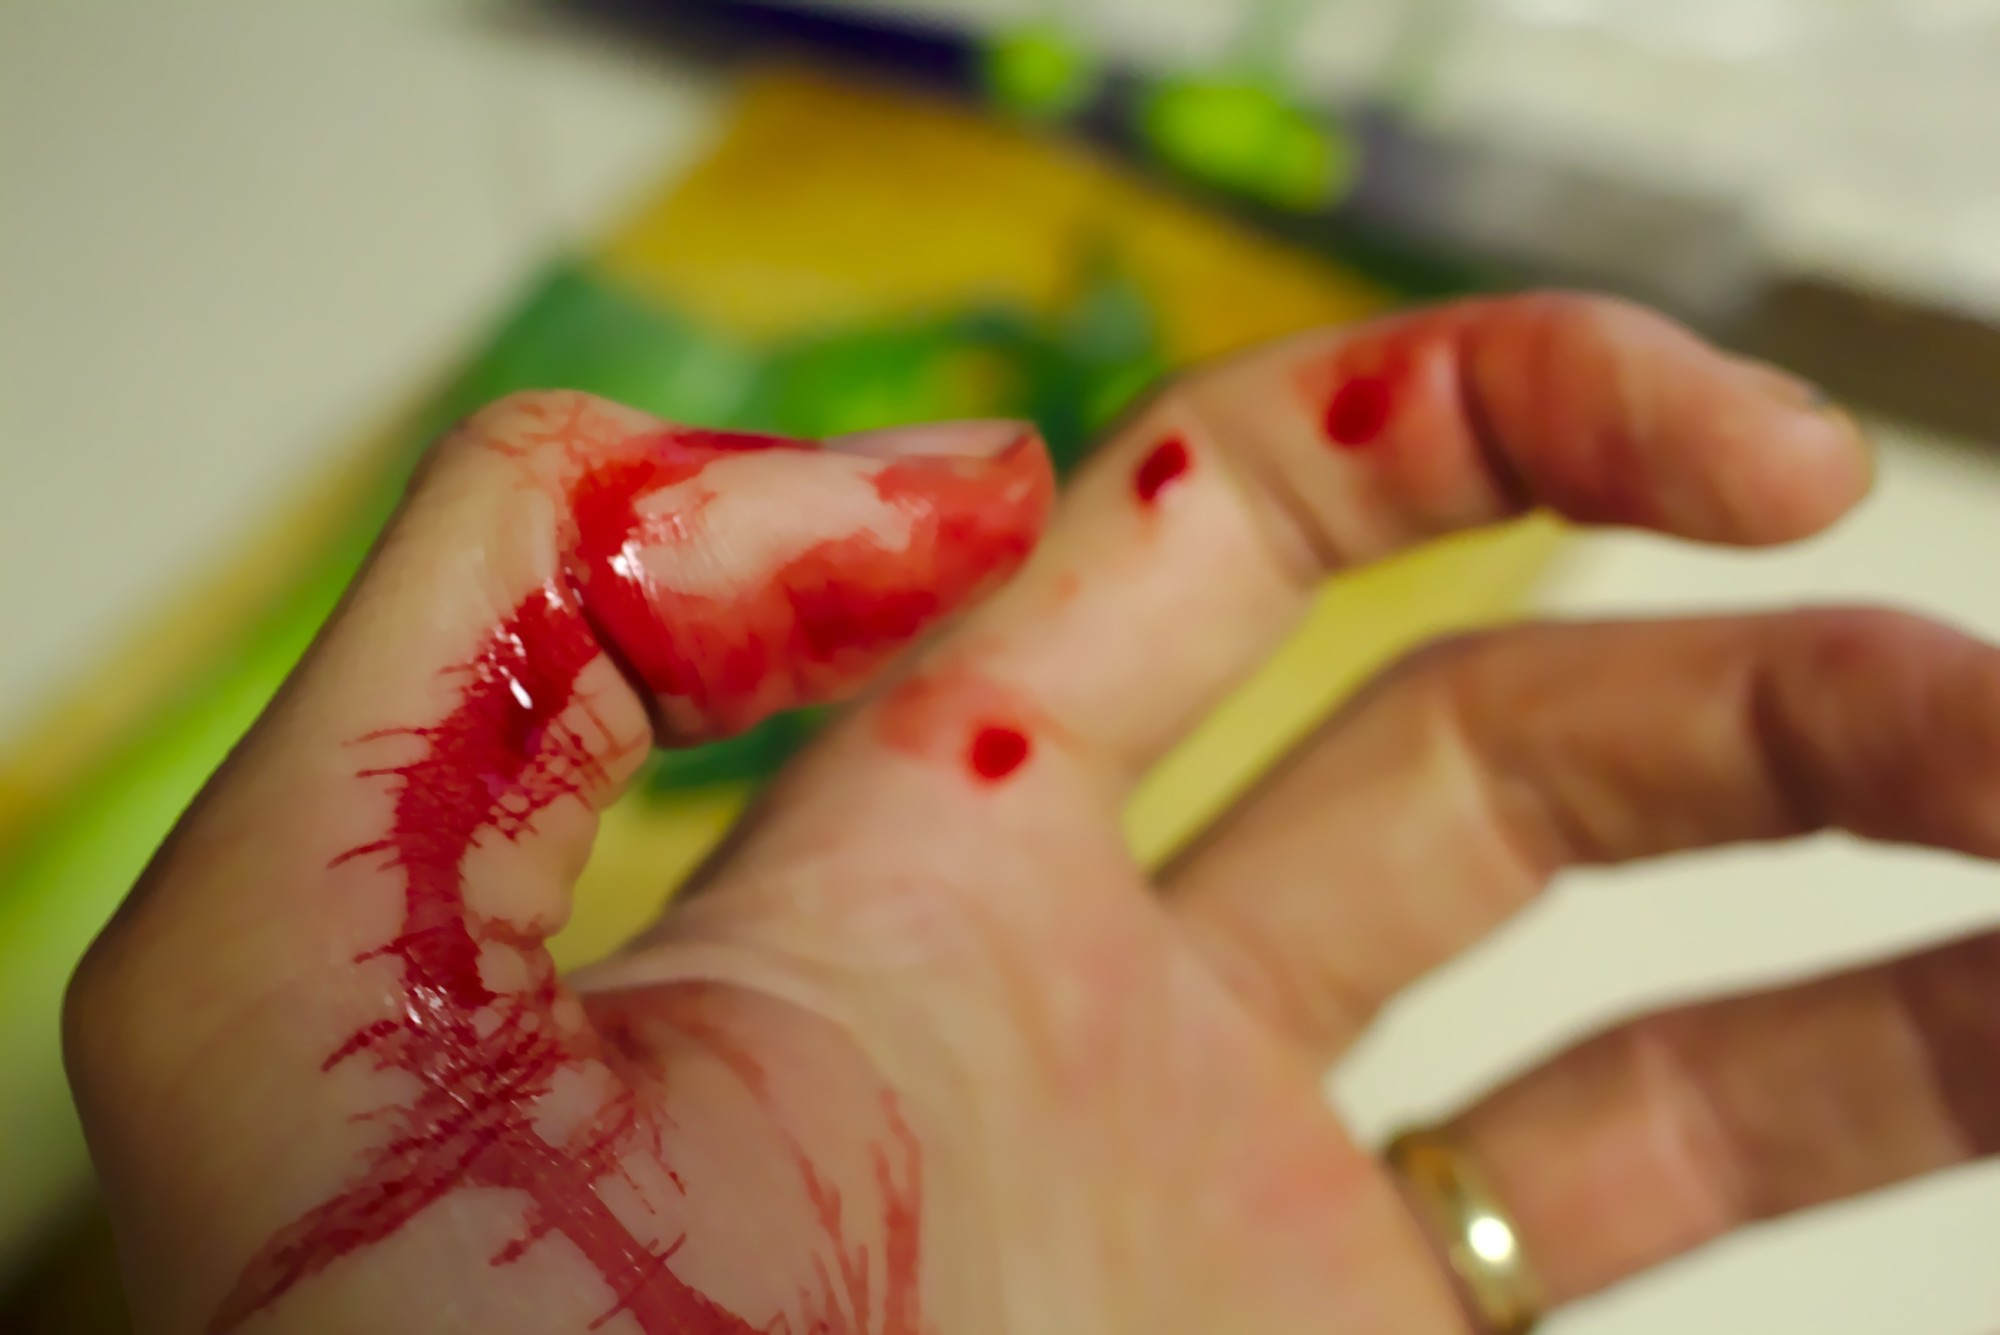 Act Fast and Prevent Infection: How to Clean a Cut Hand